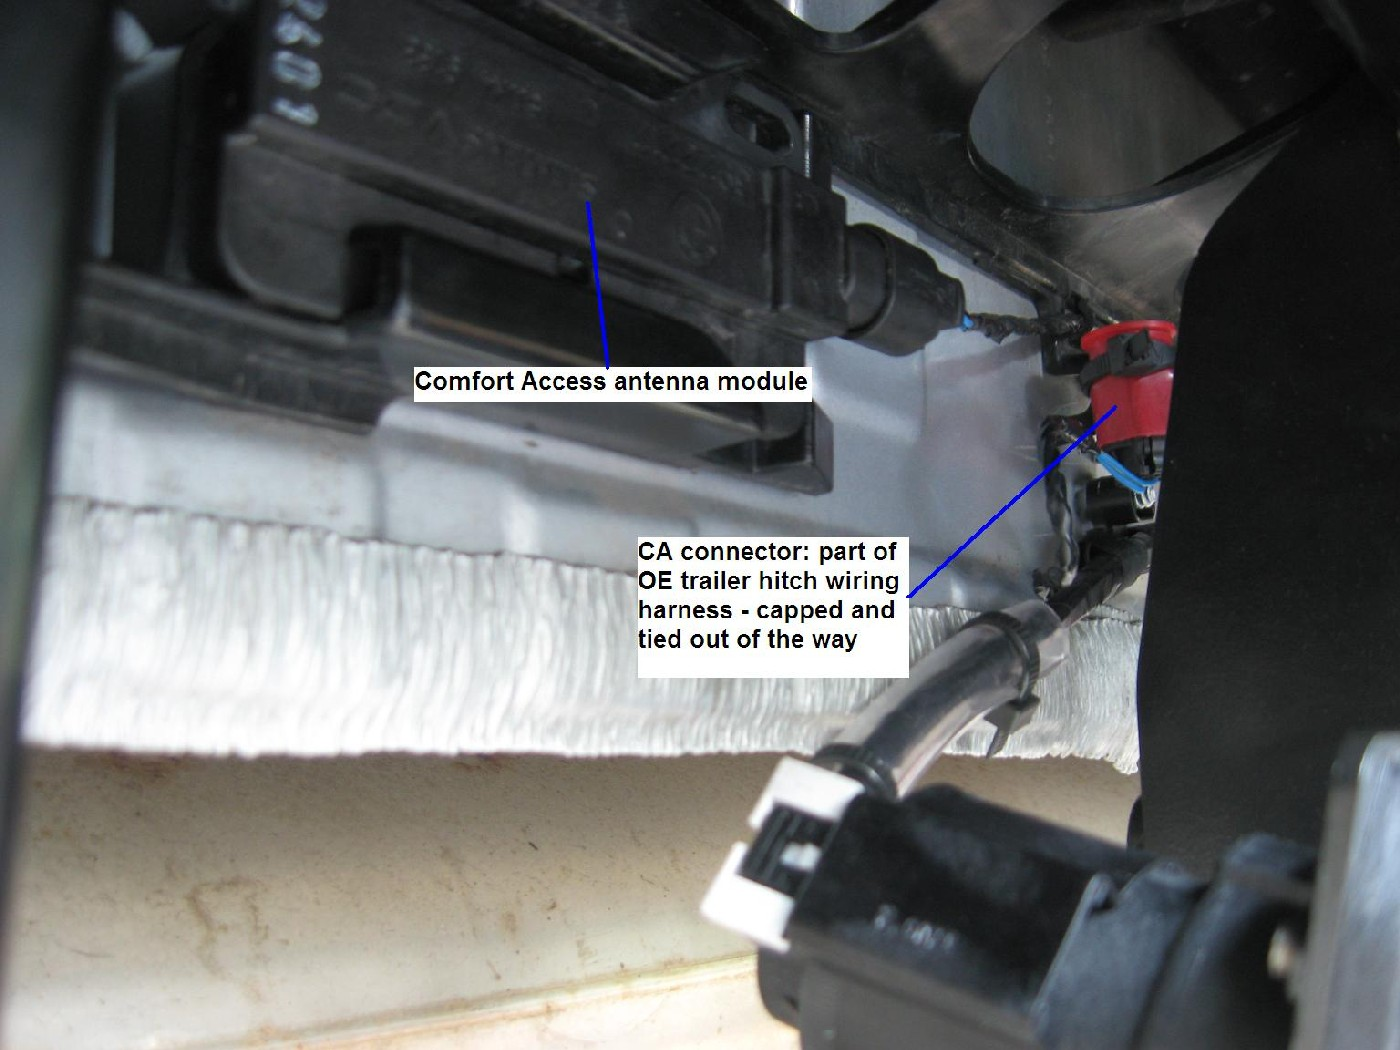 bmw x5 trailer wiring diagram subaru legacy audio oem harness 33